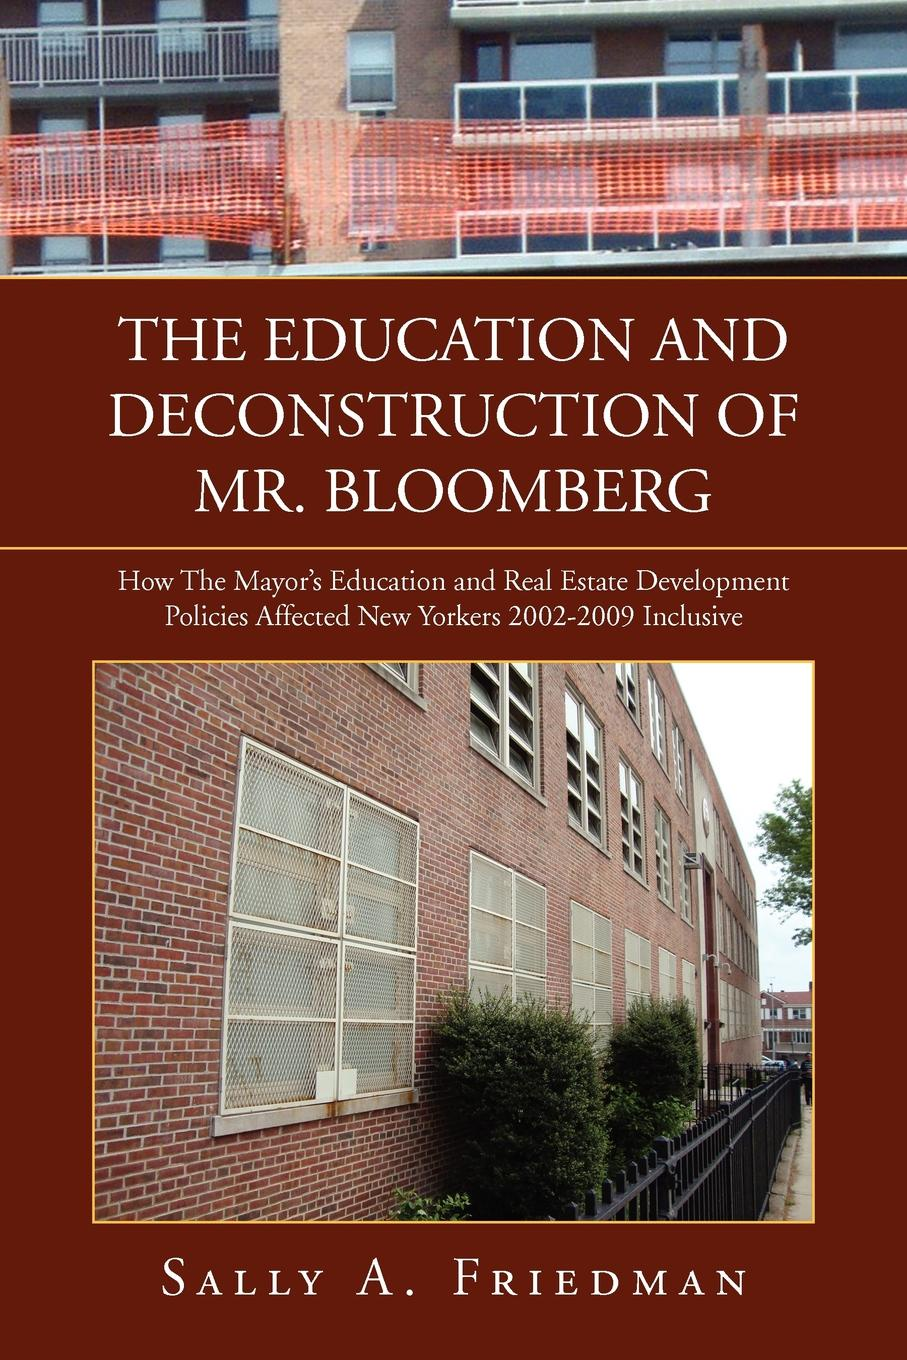 Sally A. Friedman THE EDUCATION AND DECONSTRUCTION OF MR. BLOOMBERG trifonas donada peters derrida deconstruction and education ethics of pedagogy and research